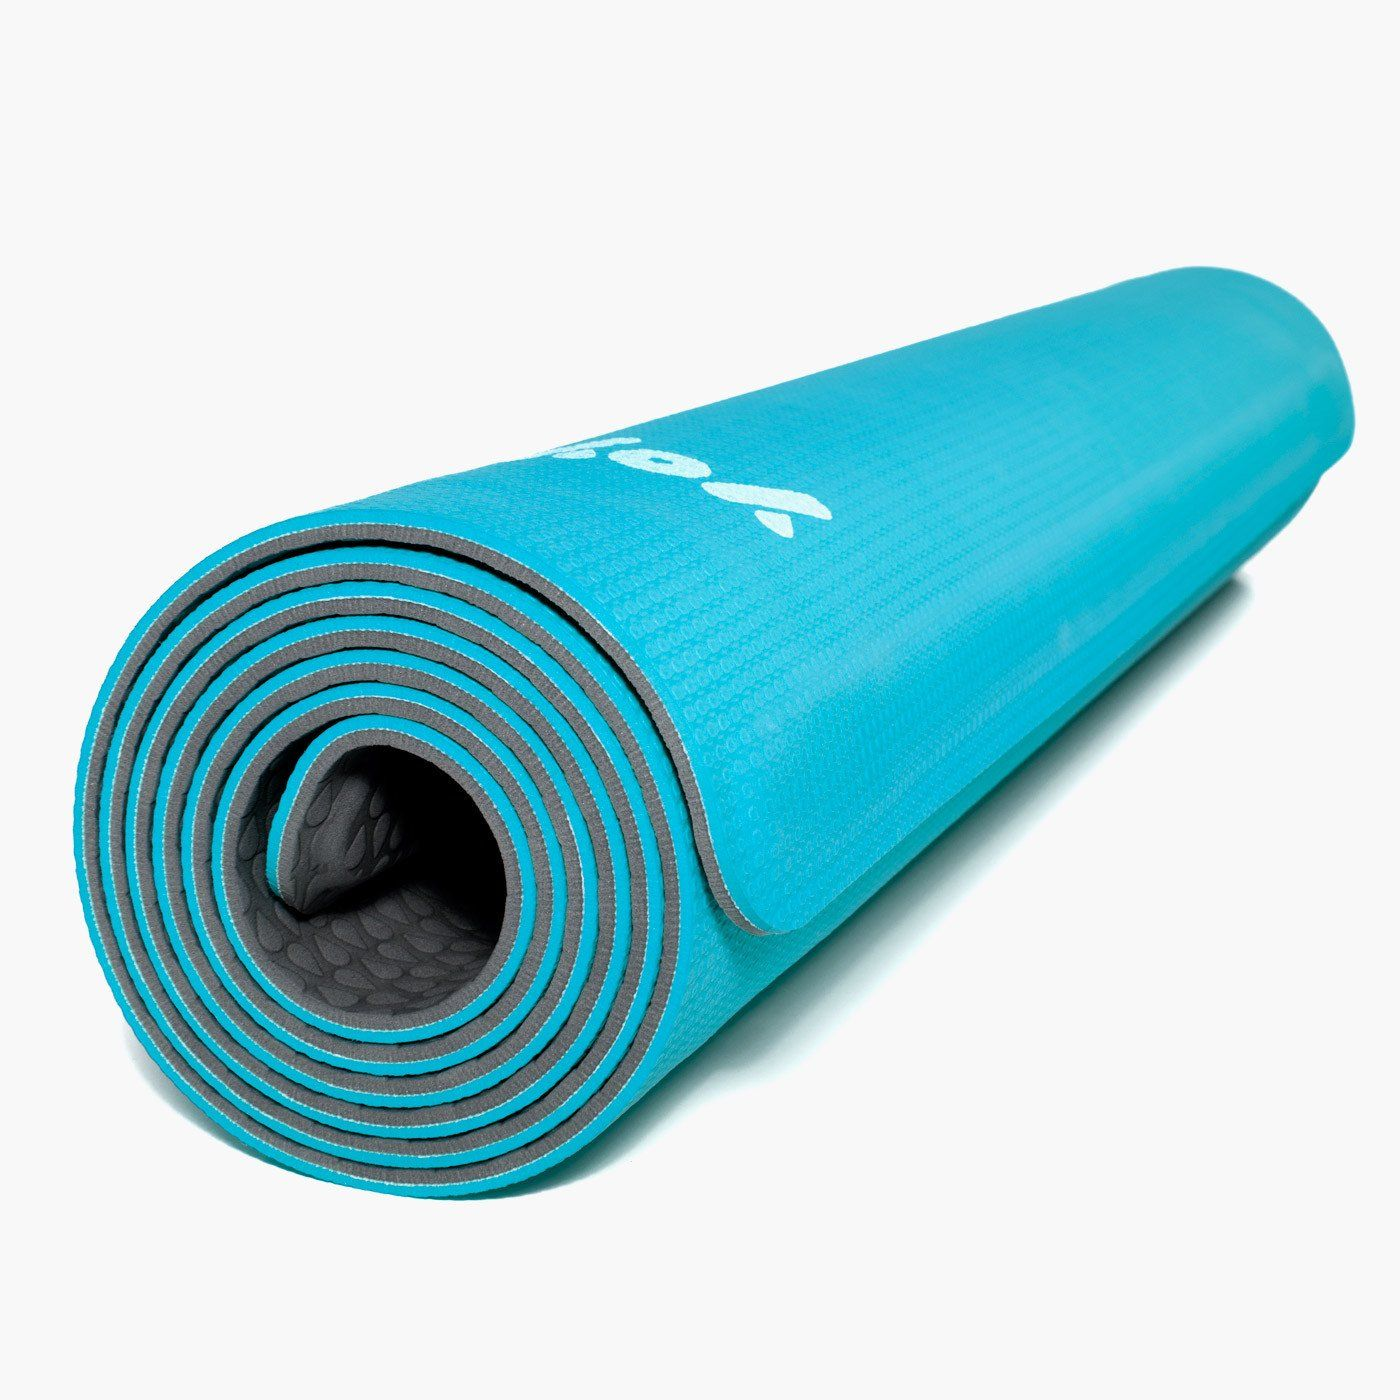 Yoyo Mat Self Rolling Yoga Mat 28 X 72 Blue Grey Click Image To Review More Details This Is An Affiliate Link Yoga Mat Cali Blue